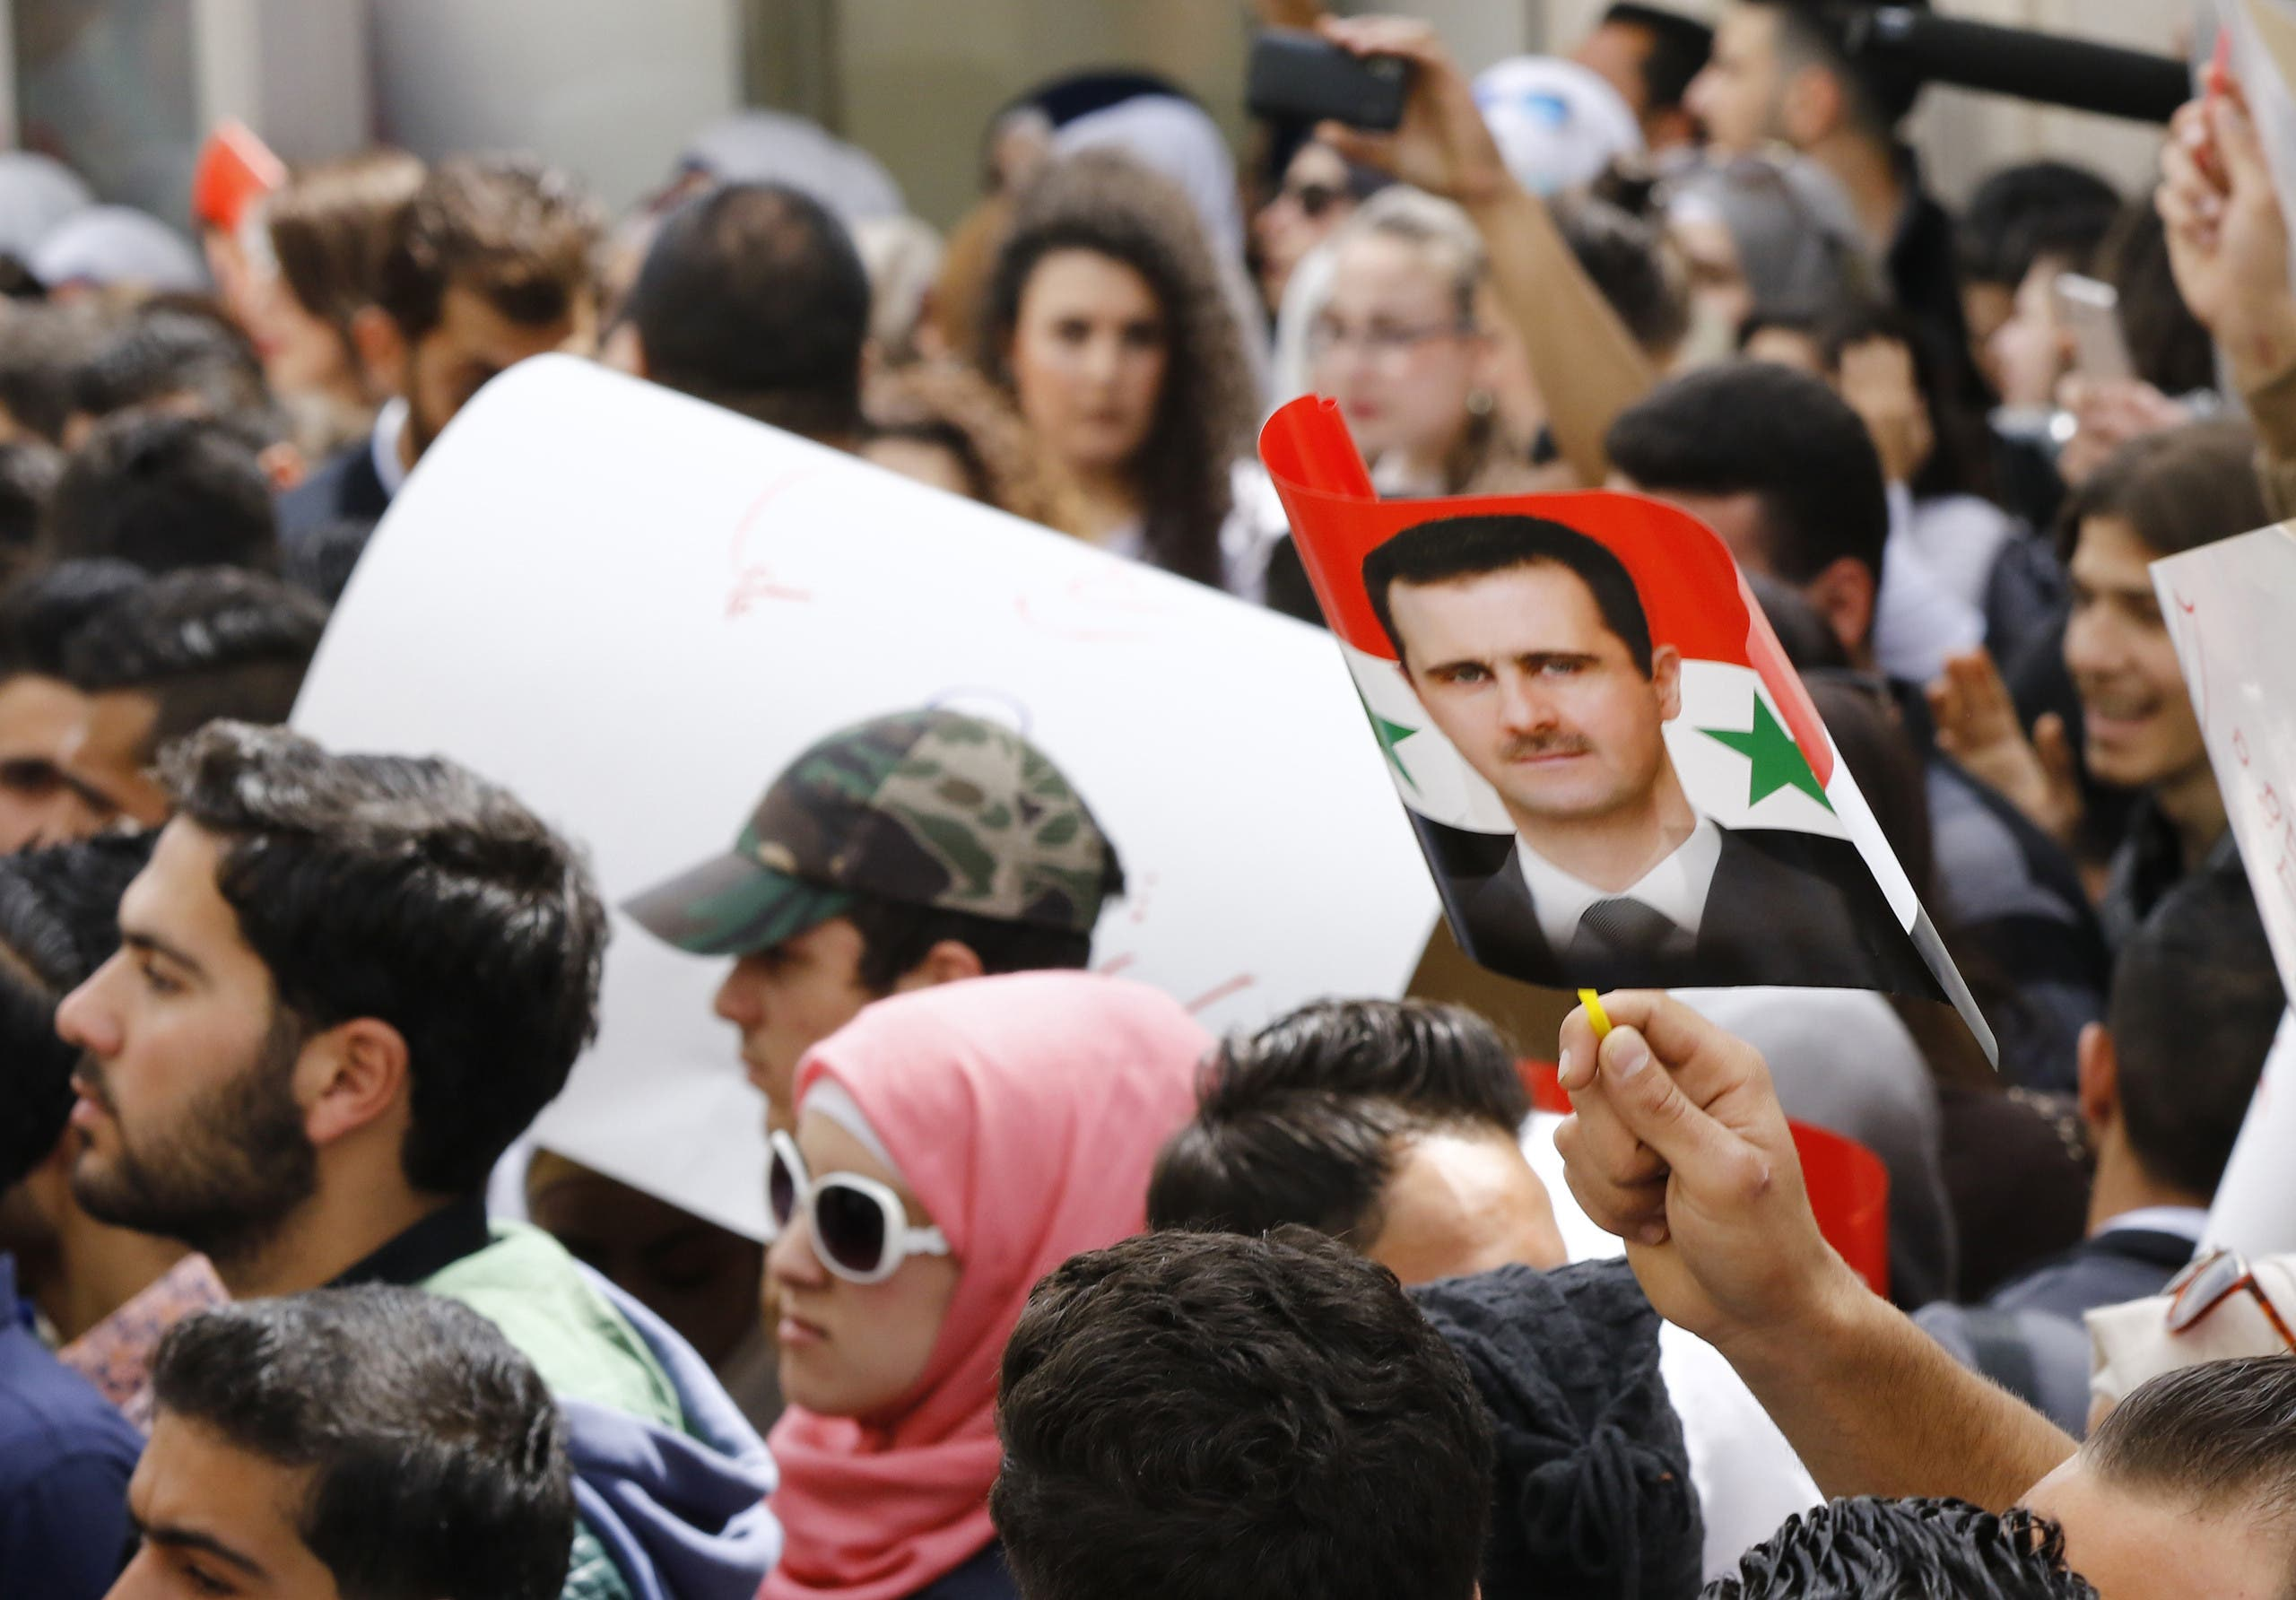 Syrian protestors wave a flag bearing a portrait of their country's President Bashar al-Assad during a demonstration in his support outside the United Nation's (UN) office in the capital Damascus, on April 11, 2017. AFP